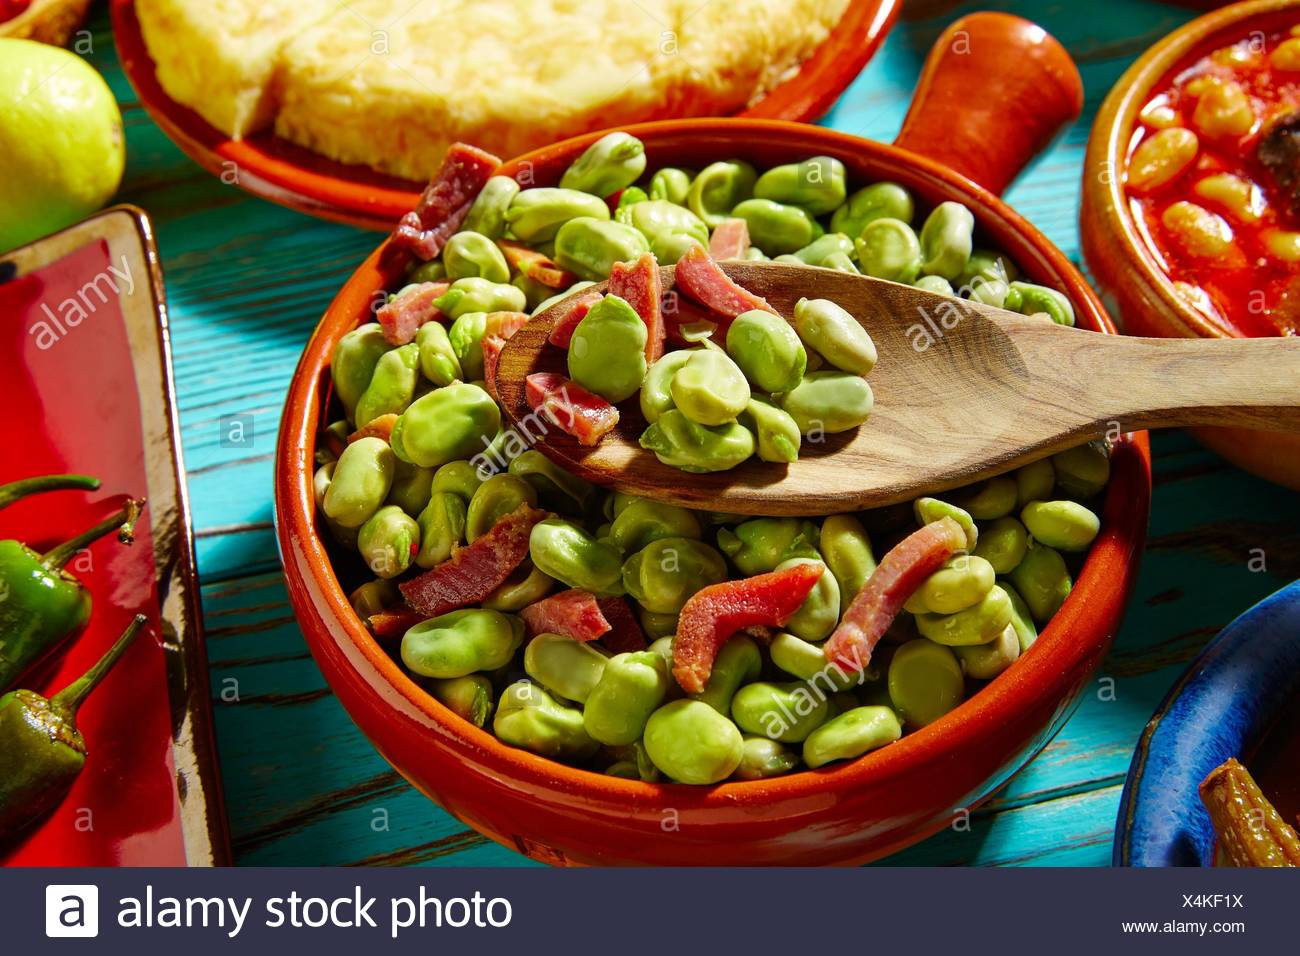 Tapas lima beans with iberico ham from Spain on wood. - Stock Image